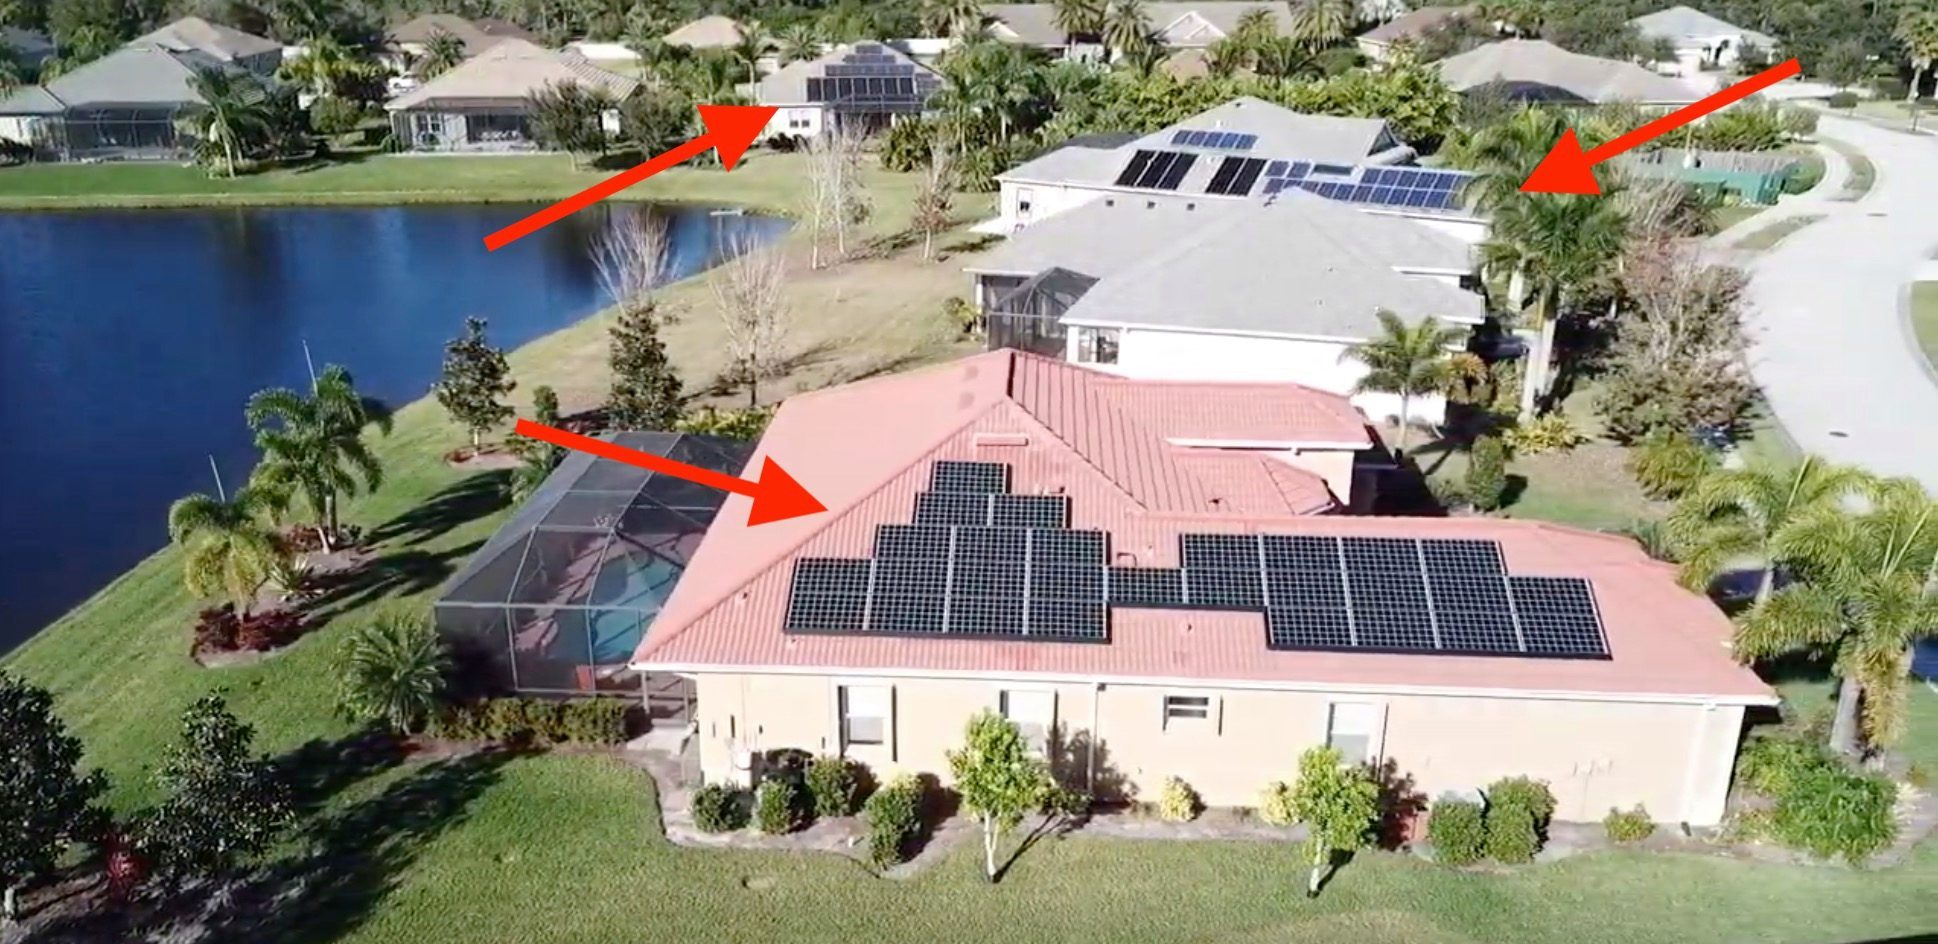 How Tesla is taking over neighborhoods with solar energy